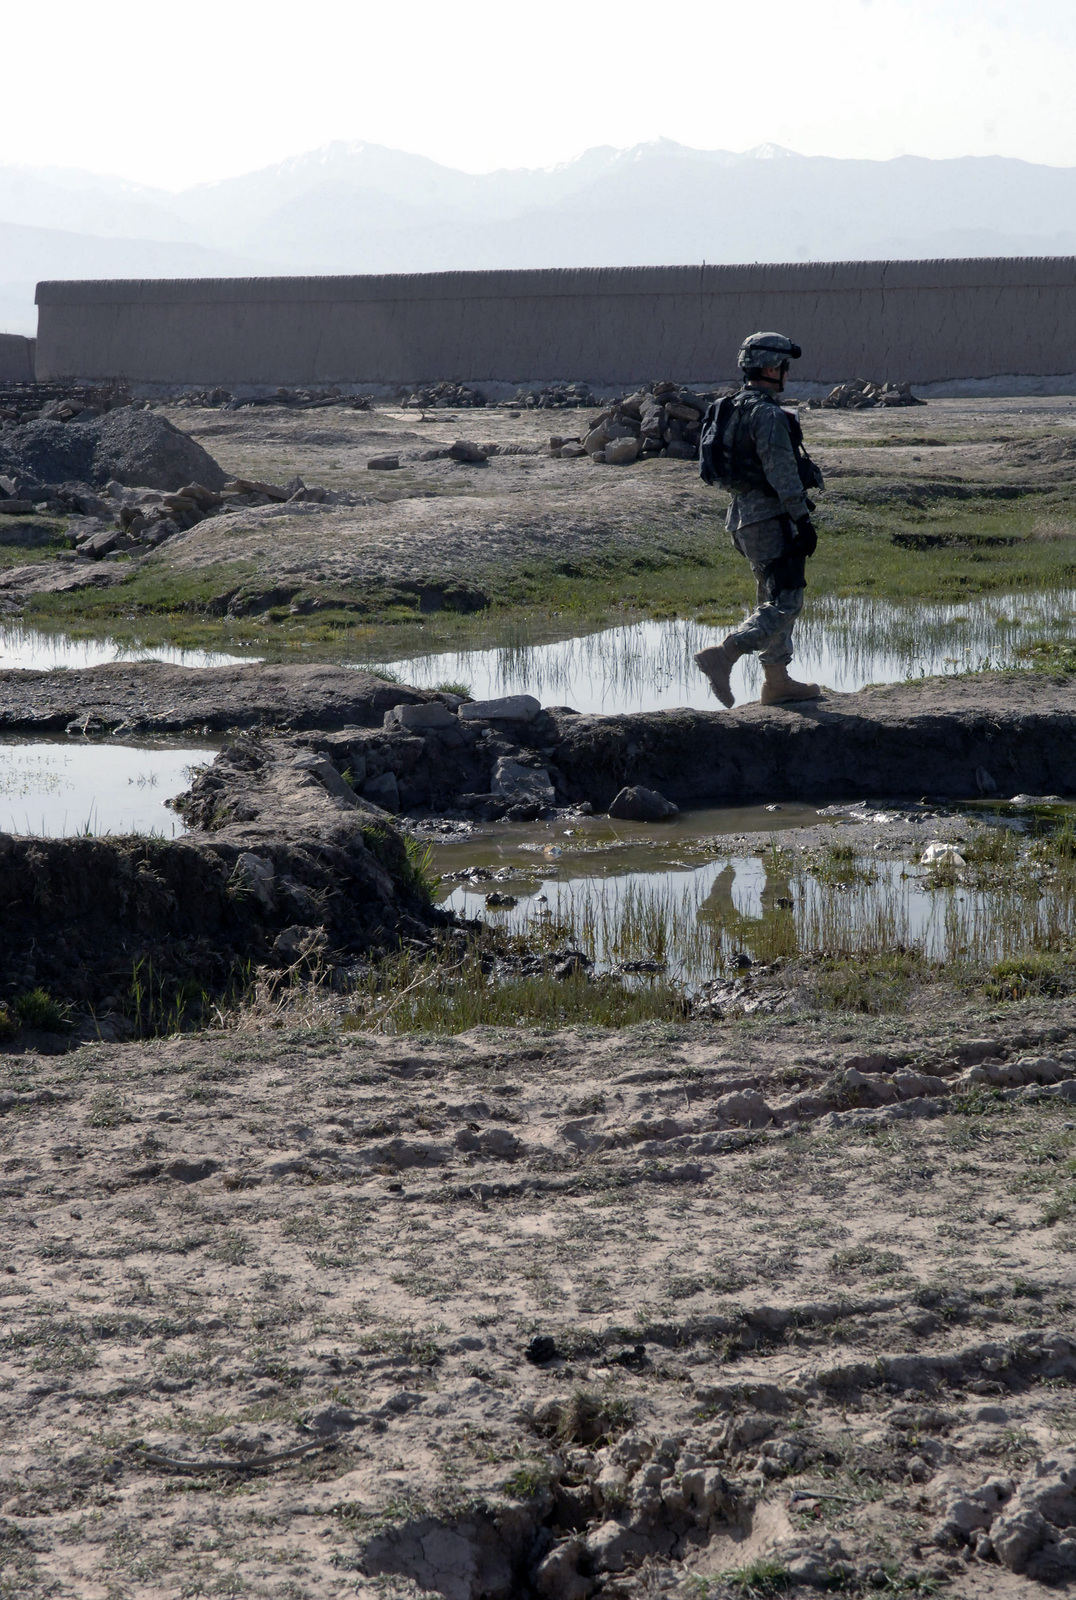 US Navy Machinist's Mate First Class (MM1) Caleb Duke, assigned to the US Army (USA) 10th Mountain Division, conducts a dismounted patrol through the countryside during a search of the local area in Zormat, Afghanistan, during Operation ENDURING FREEDOM